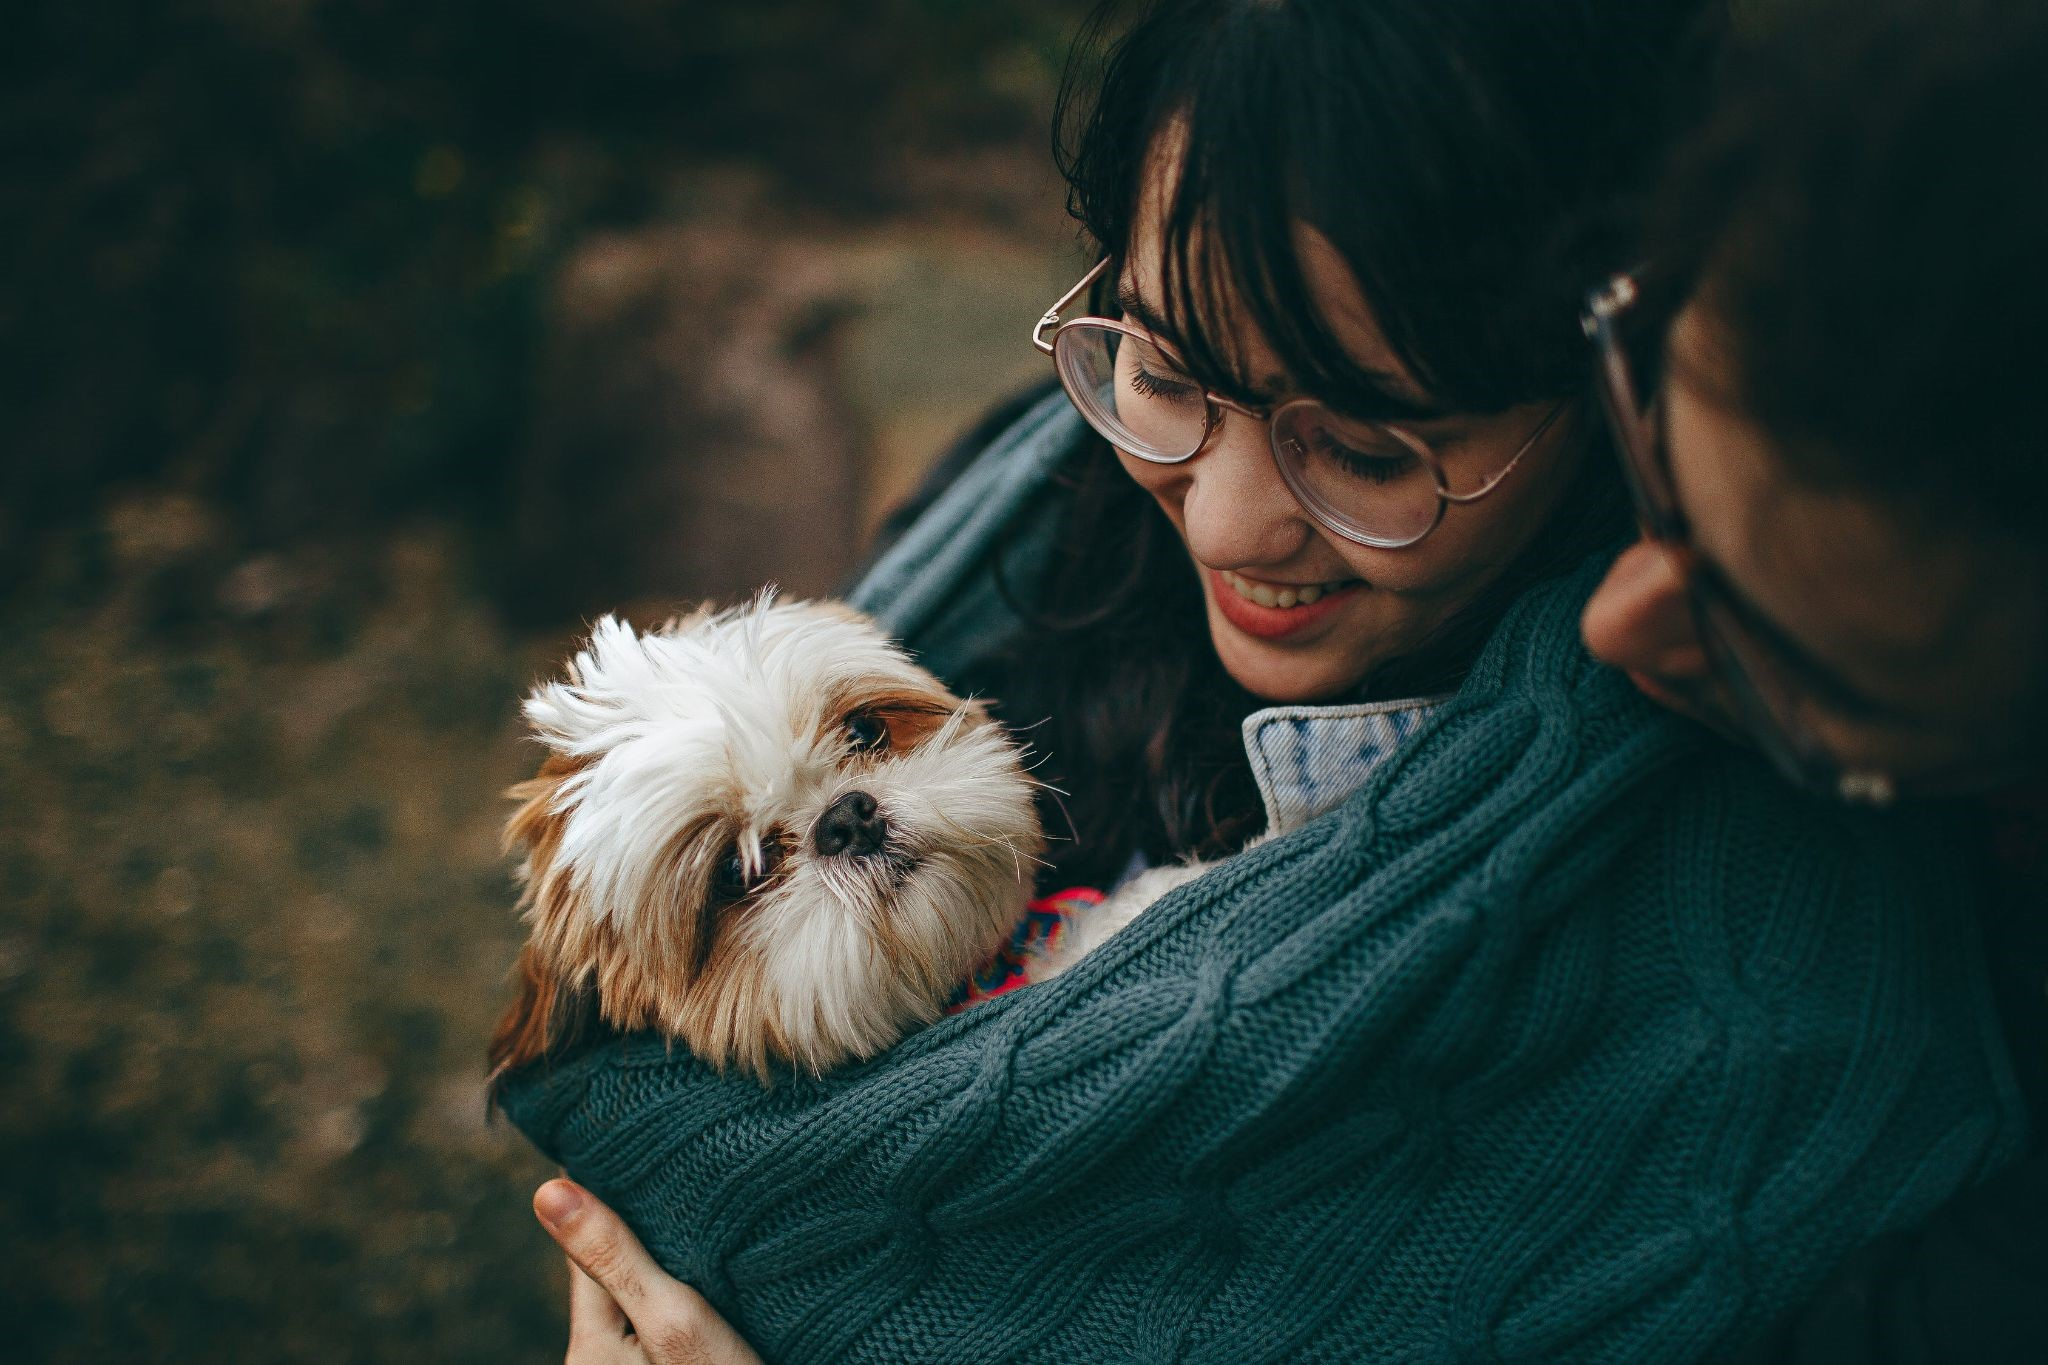 image - Important Things to Look into to Make Your Dog's Life Even More Fulfilling